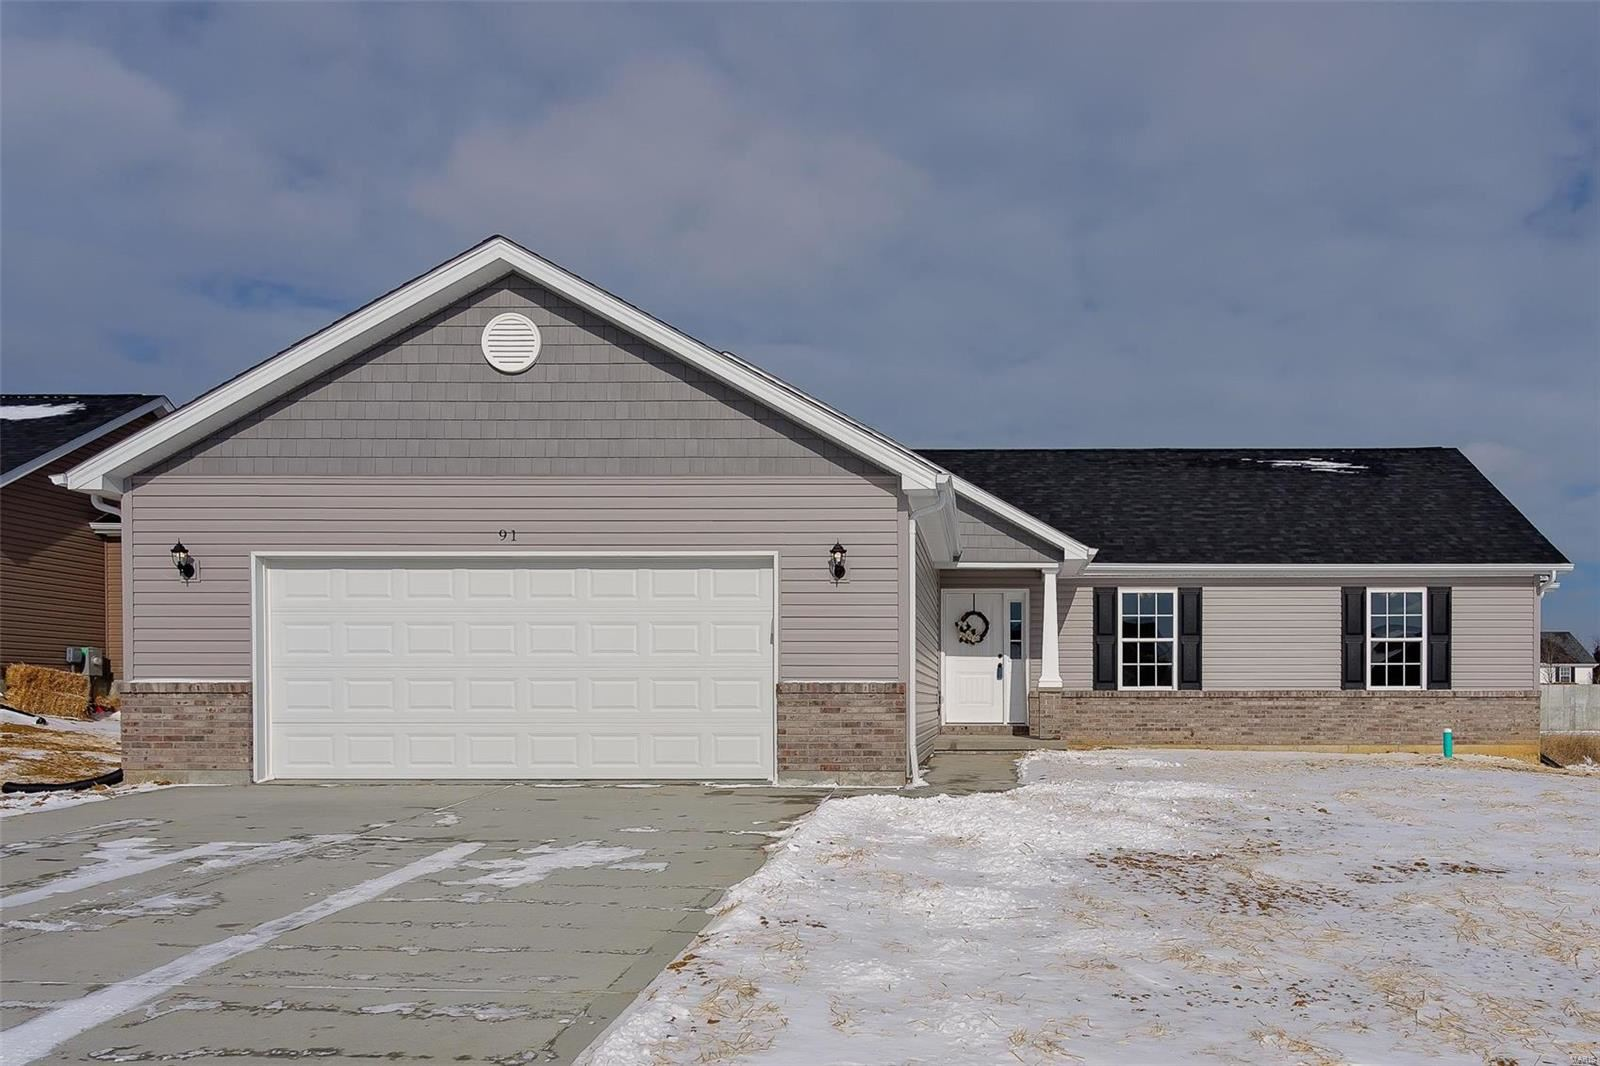 40 Selleck Court, Troy, MO 63379 - MLS#: 21011674